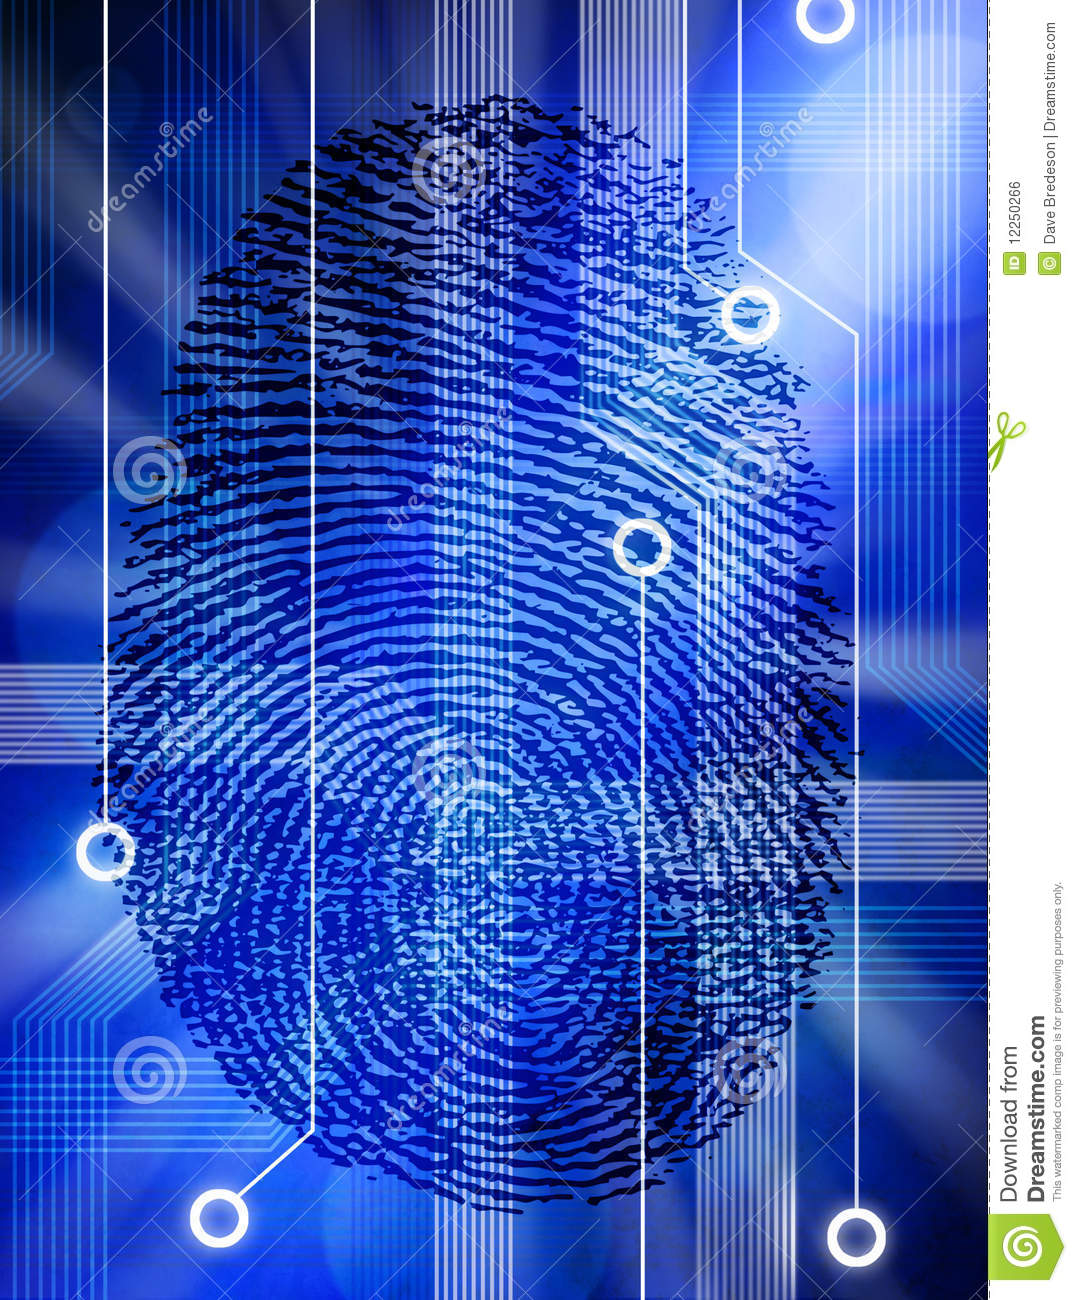 computer fingerprint technology security identity stock